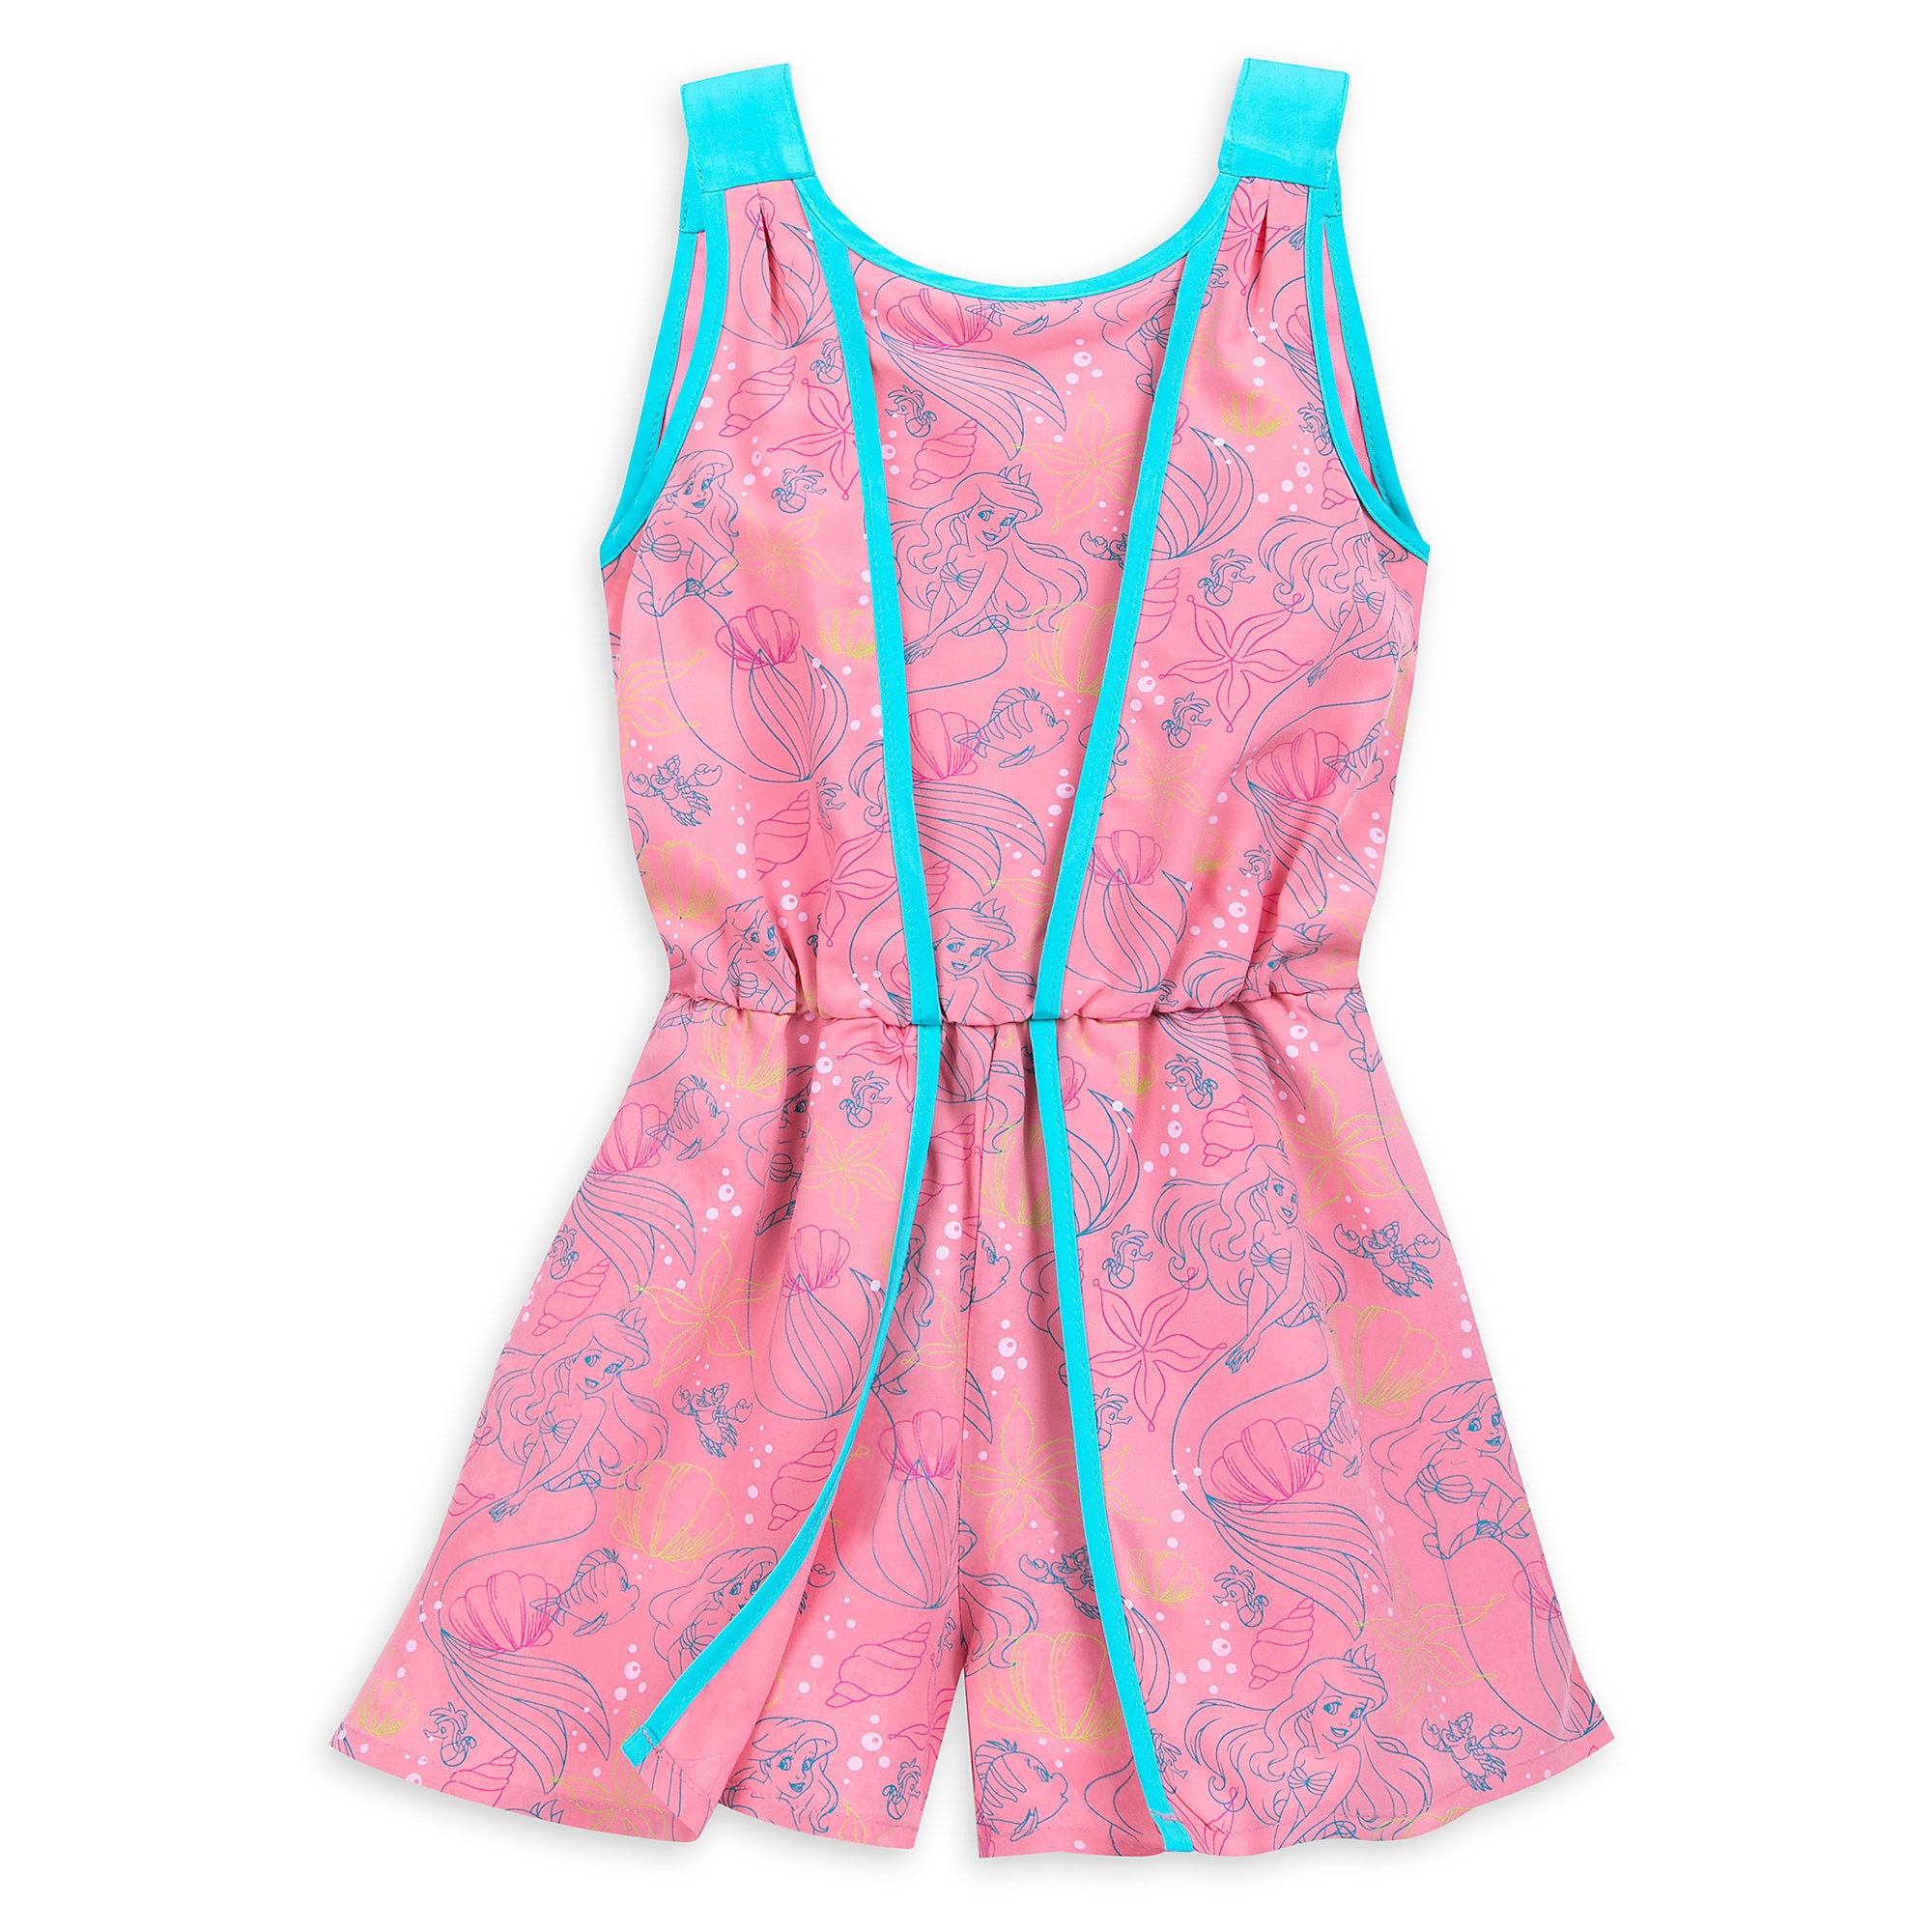 The Little Mermaid Woven Romper for Girls